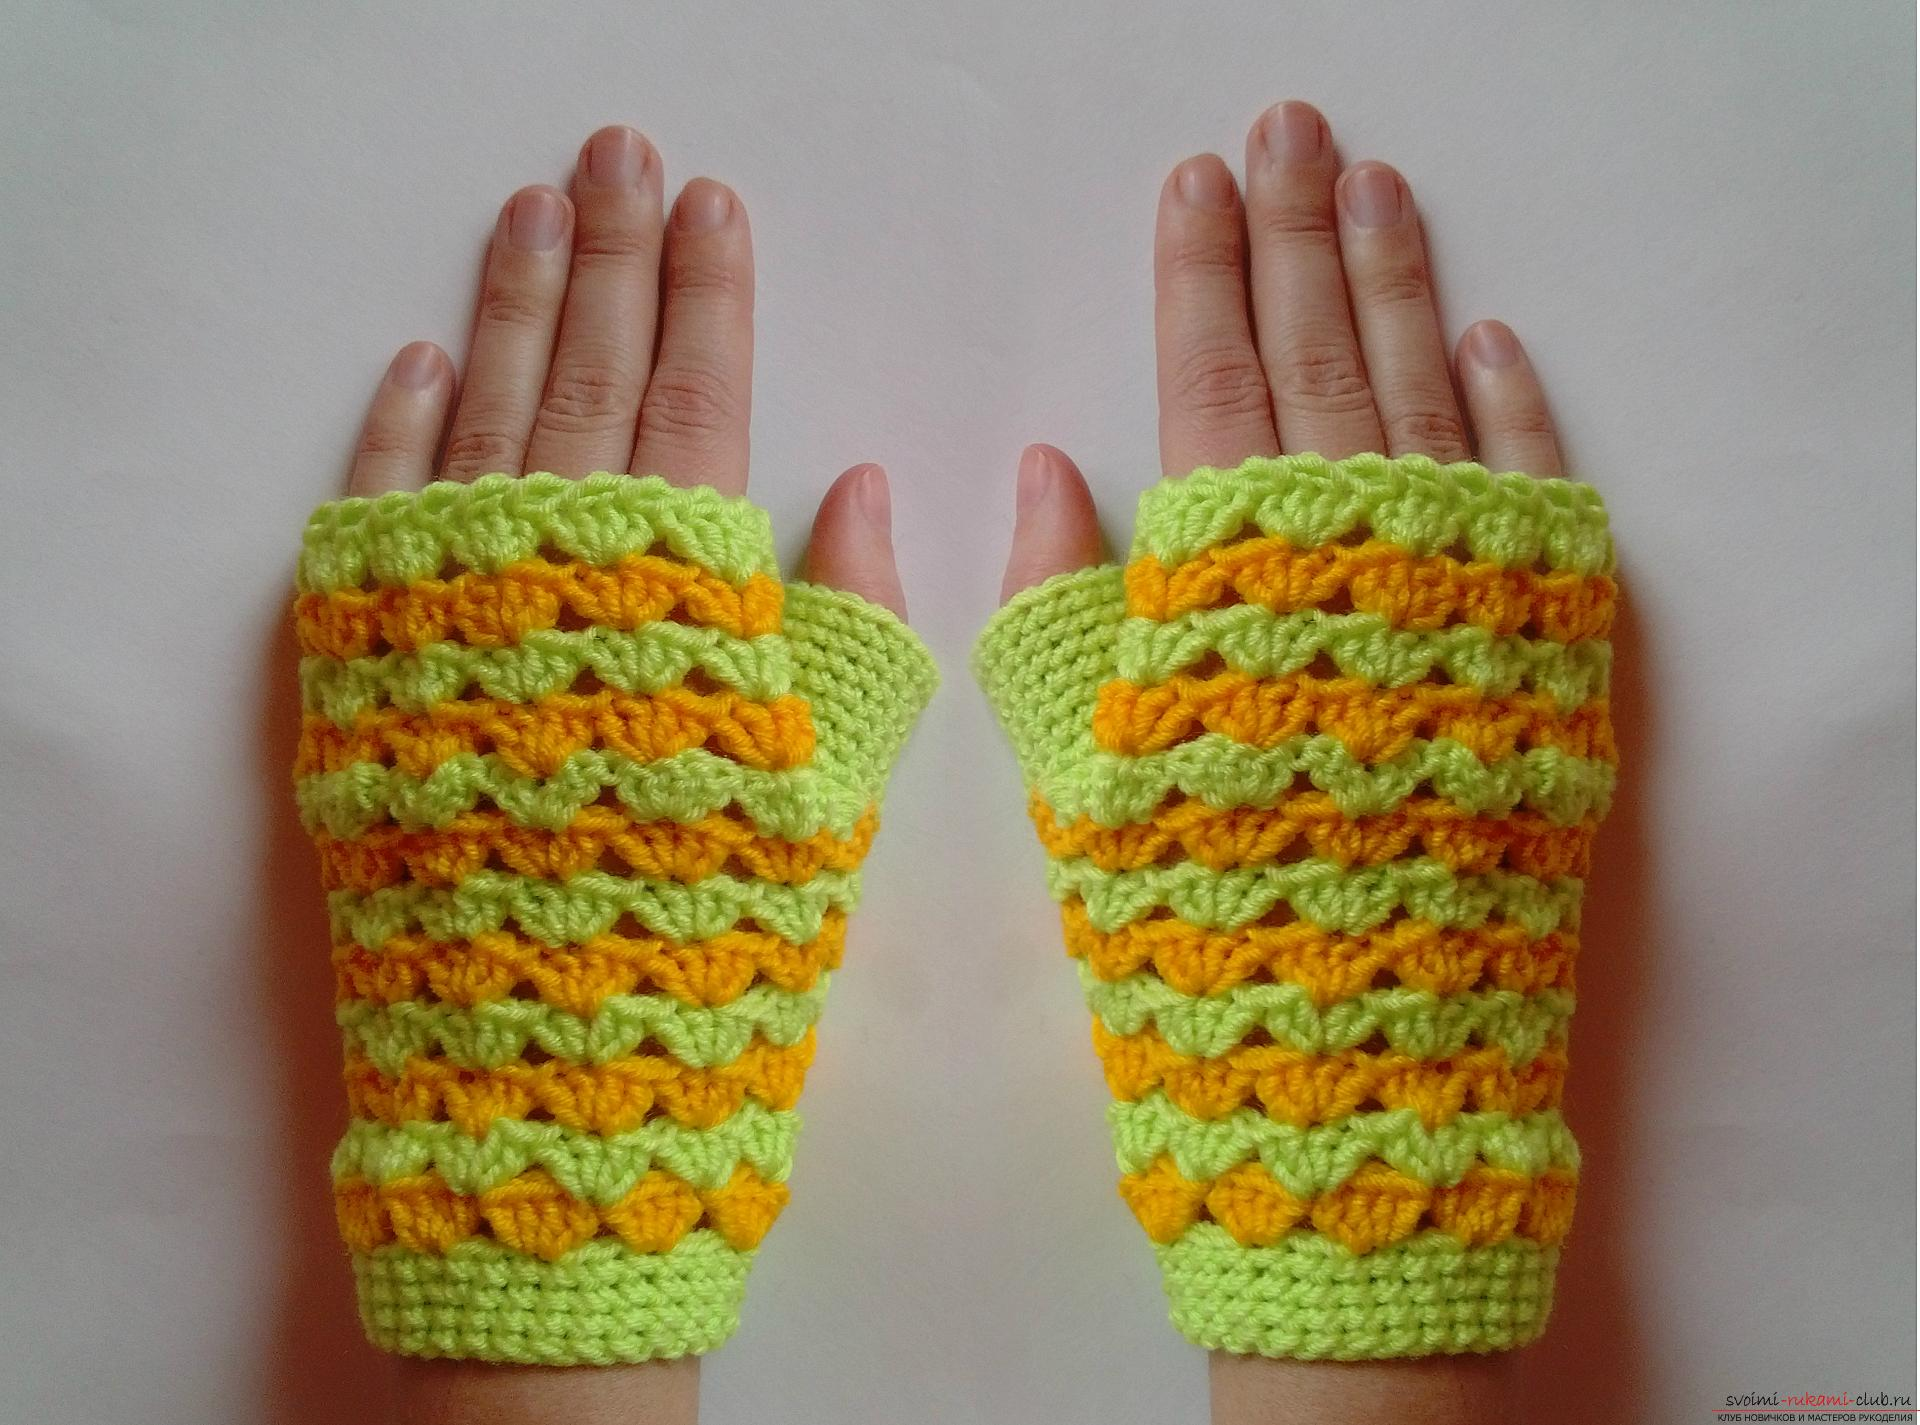 A master class with a photo and a description of the process will teach how to tie fishnet mitts crochet. Photo №1